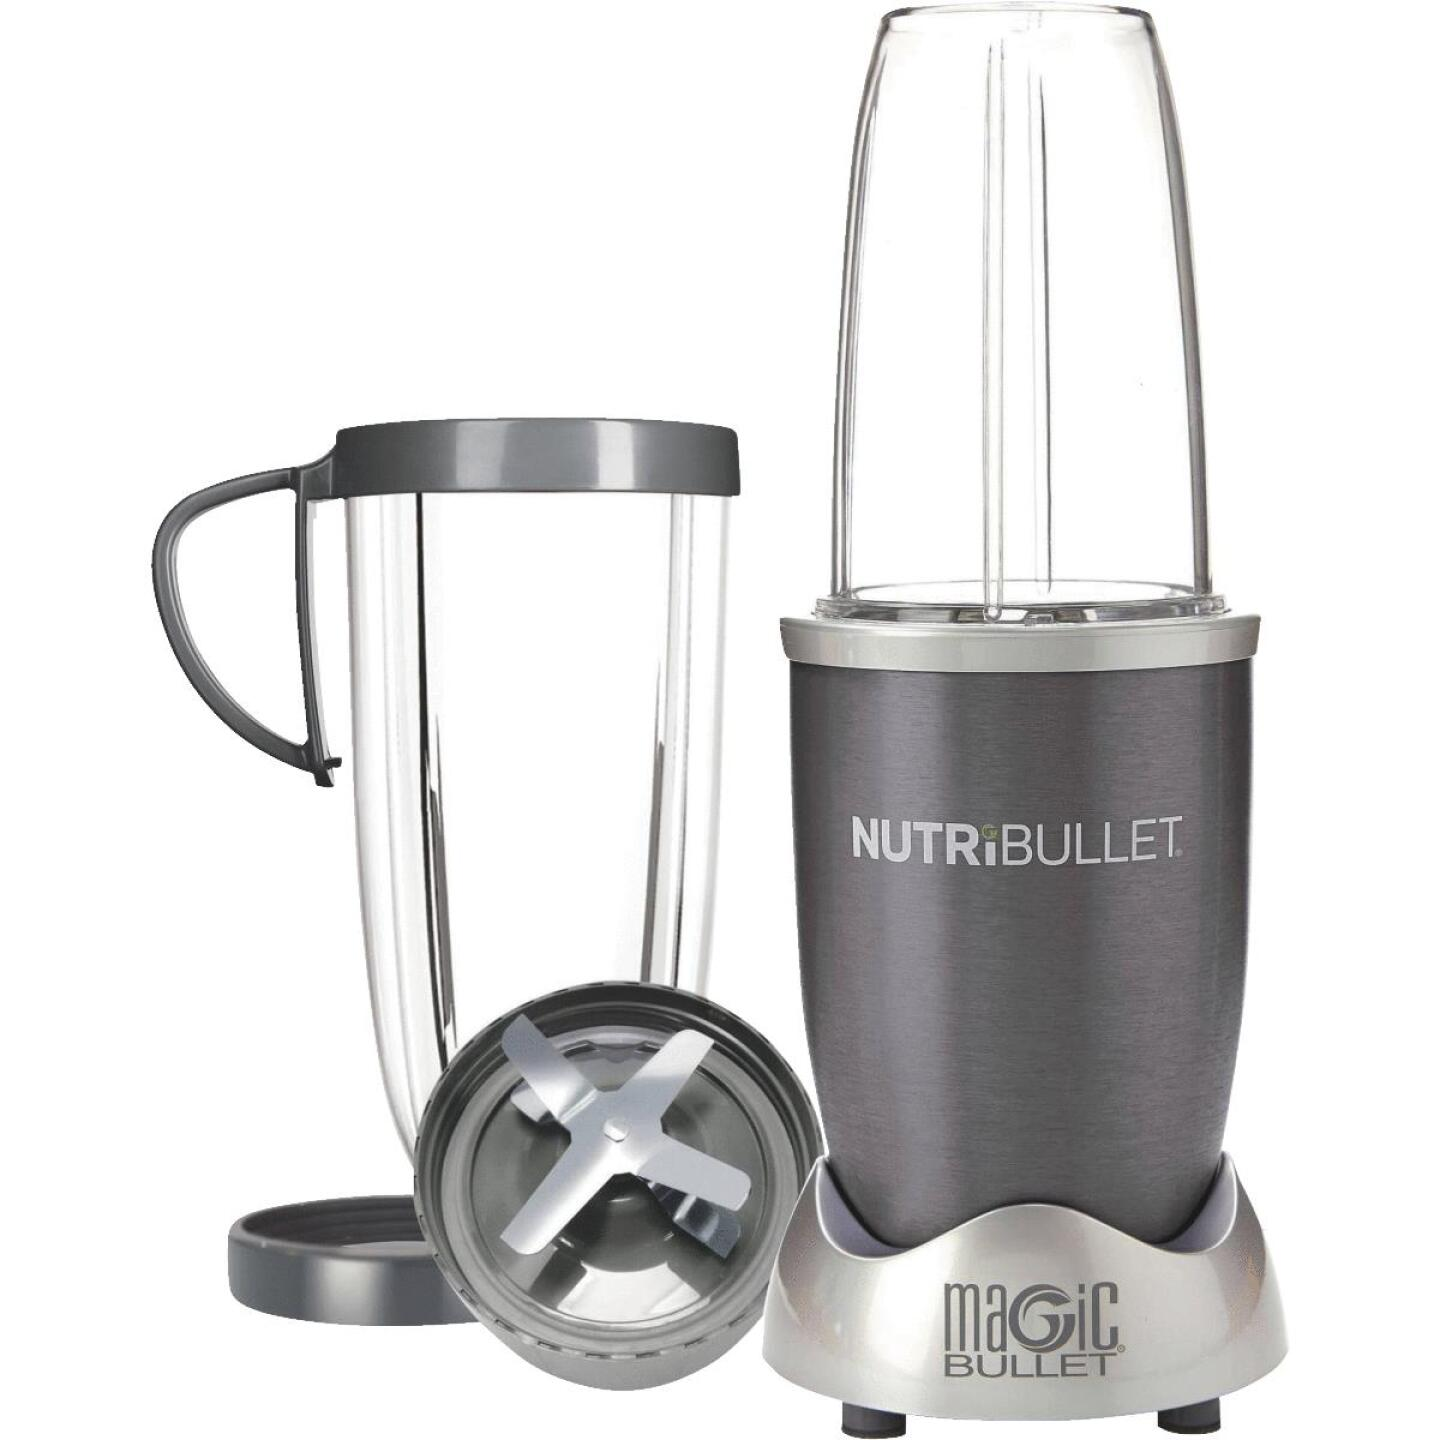 Magic Bullet NutriBullet Blender (8 Piece) Image 1